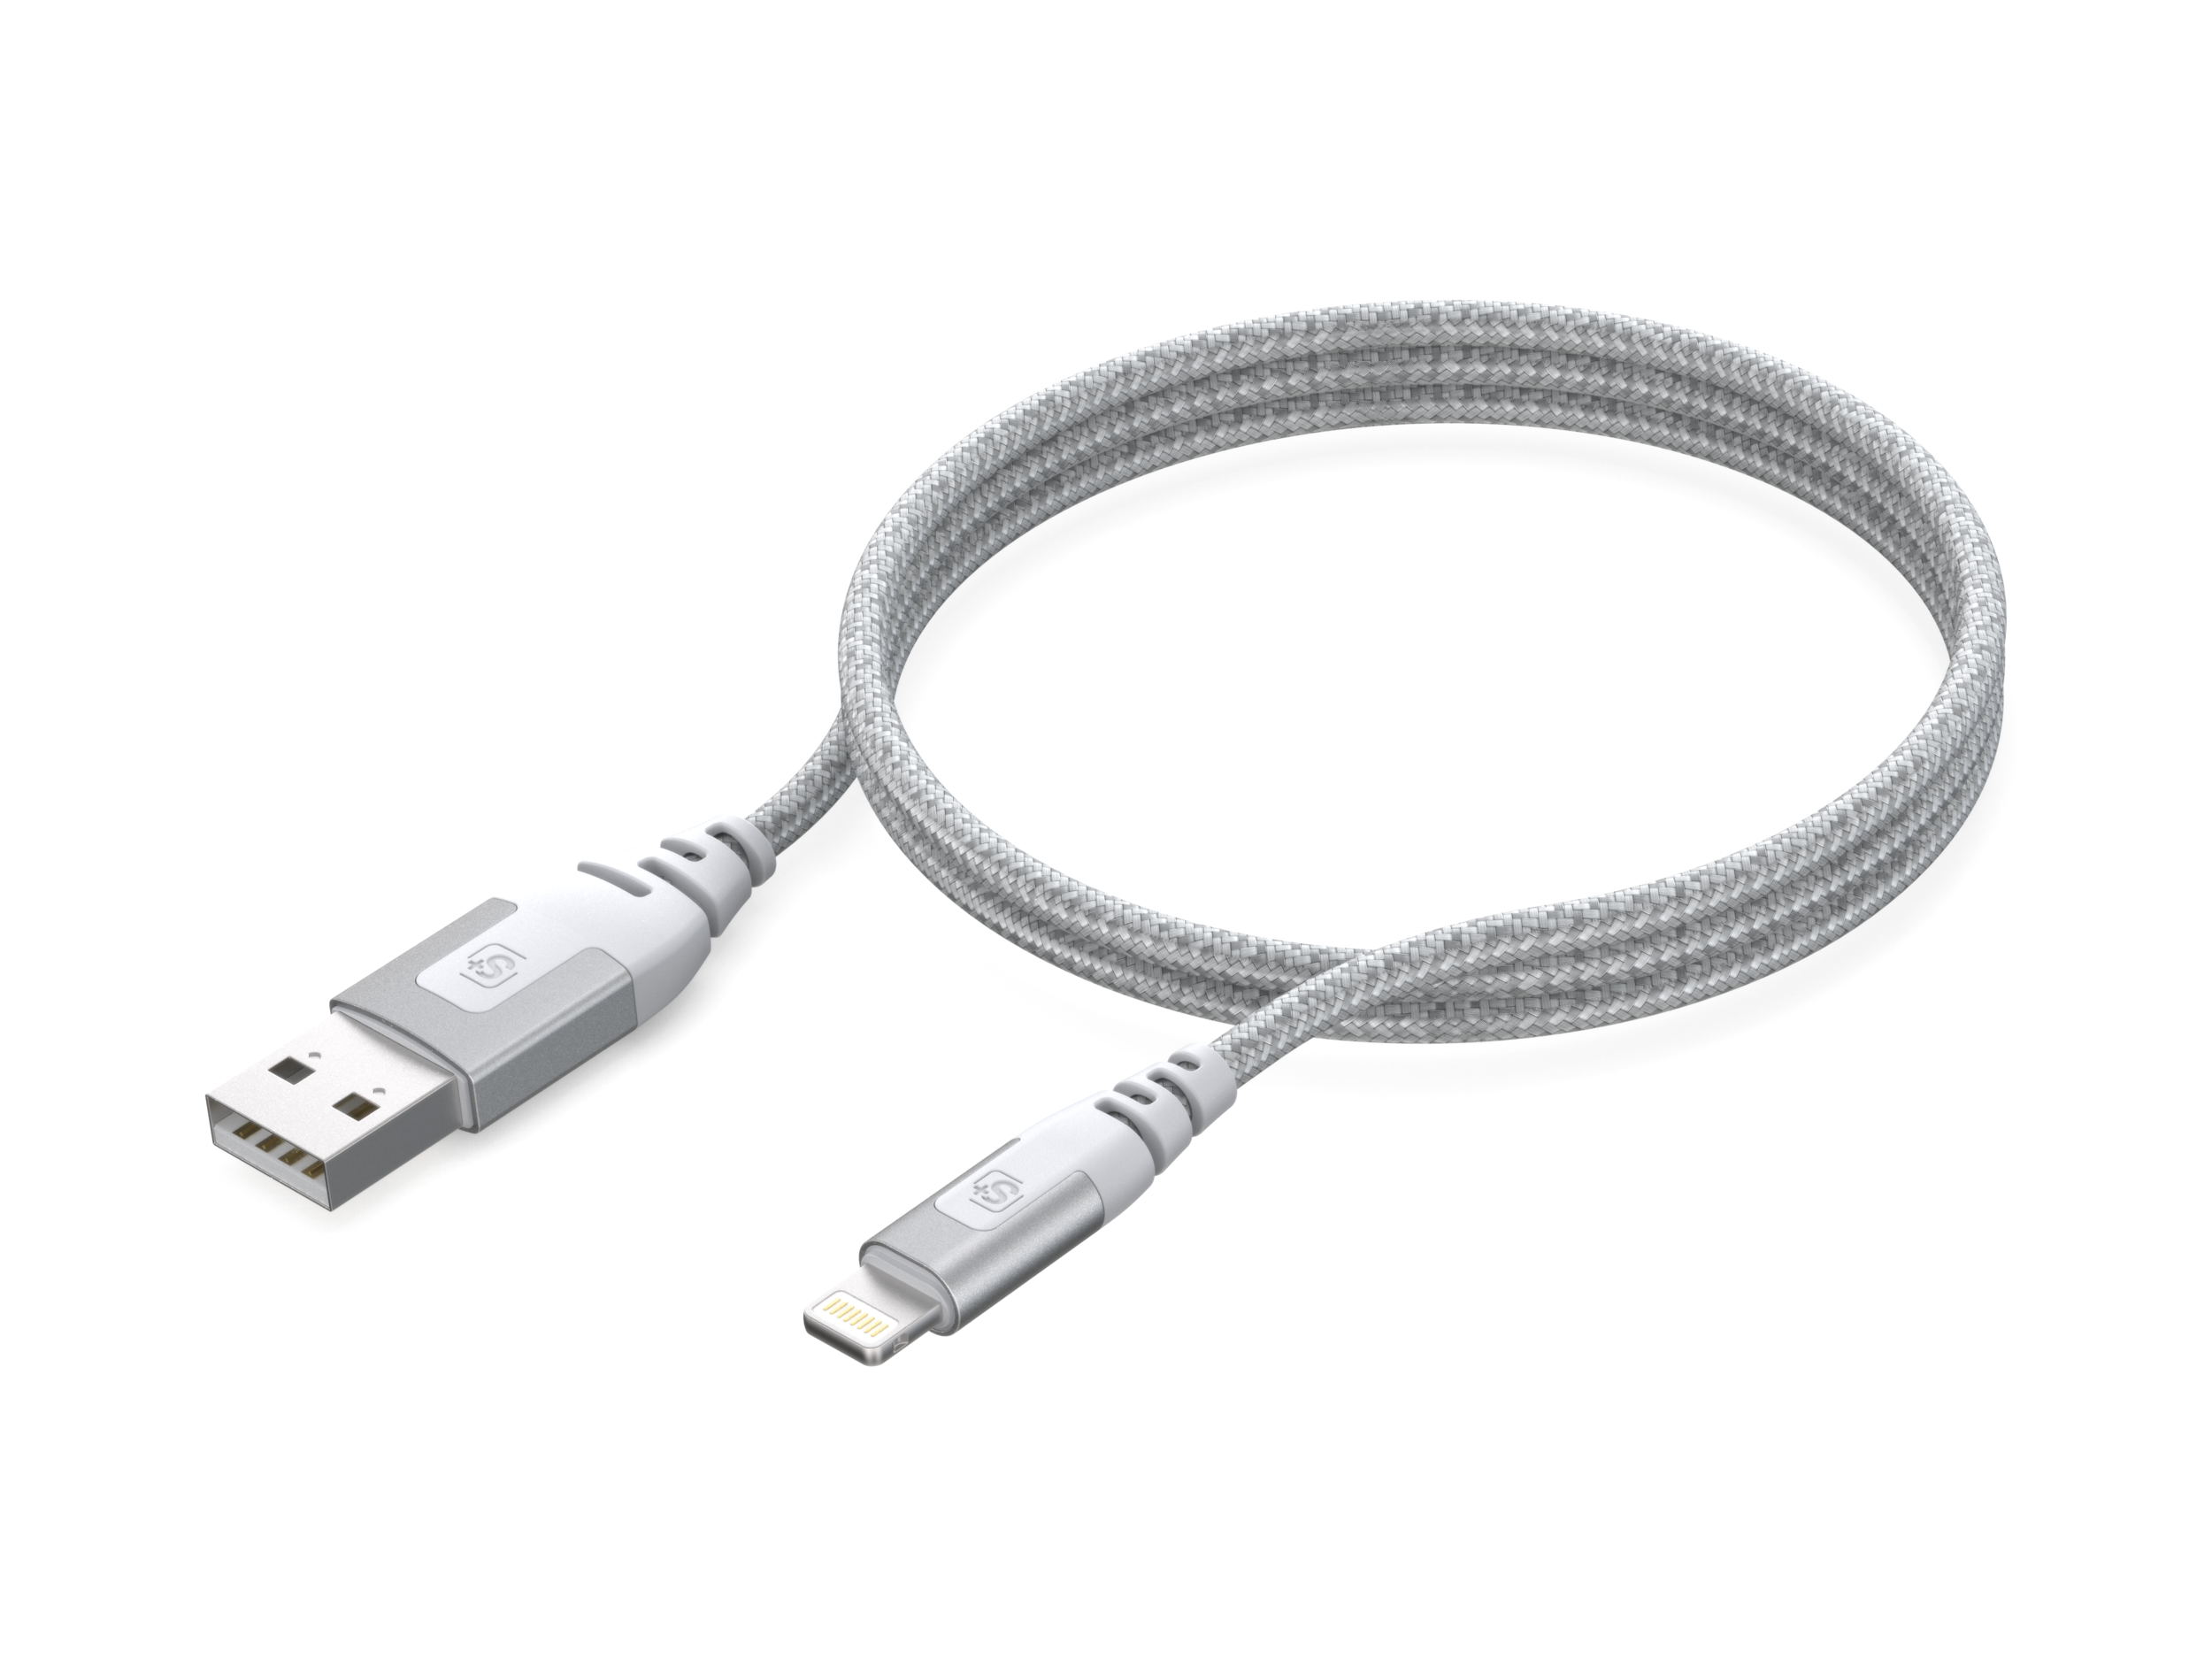 1.8m Armored Sync/Charge Cable Lightning Connector, Silver